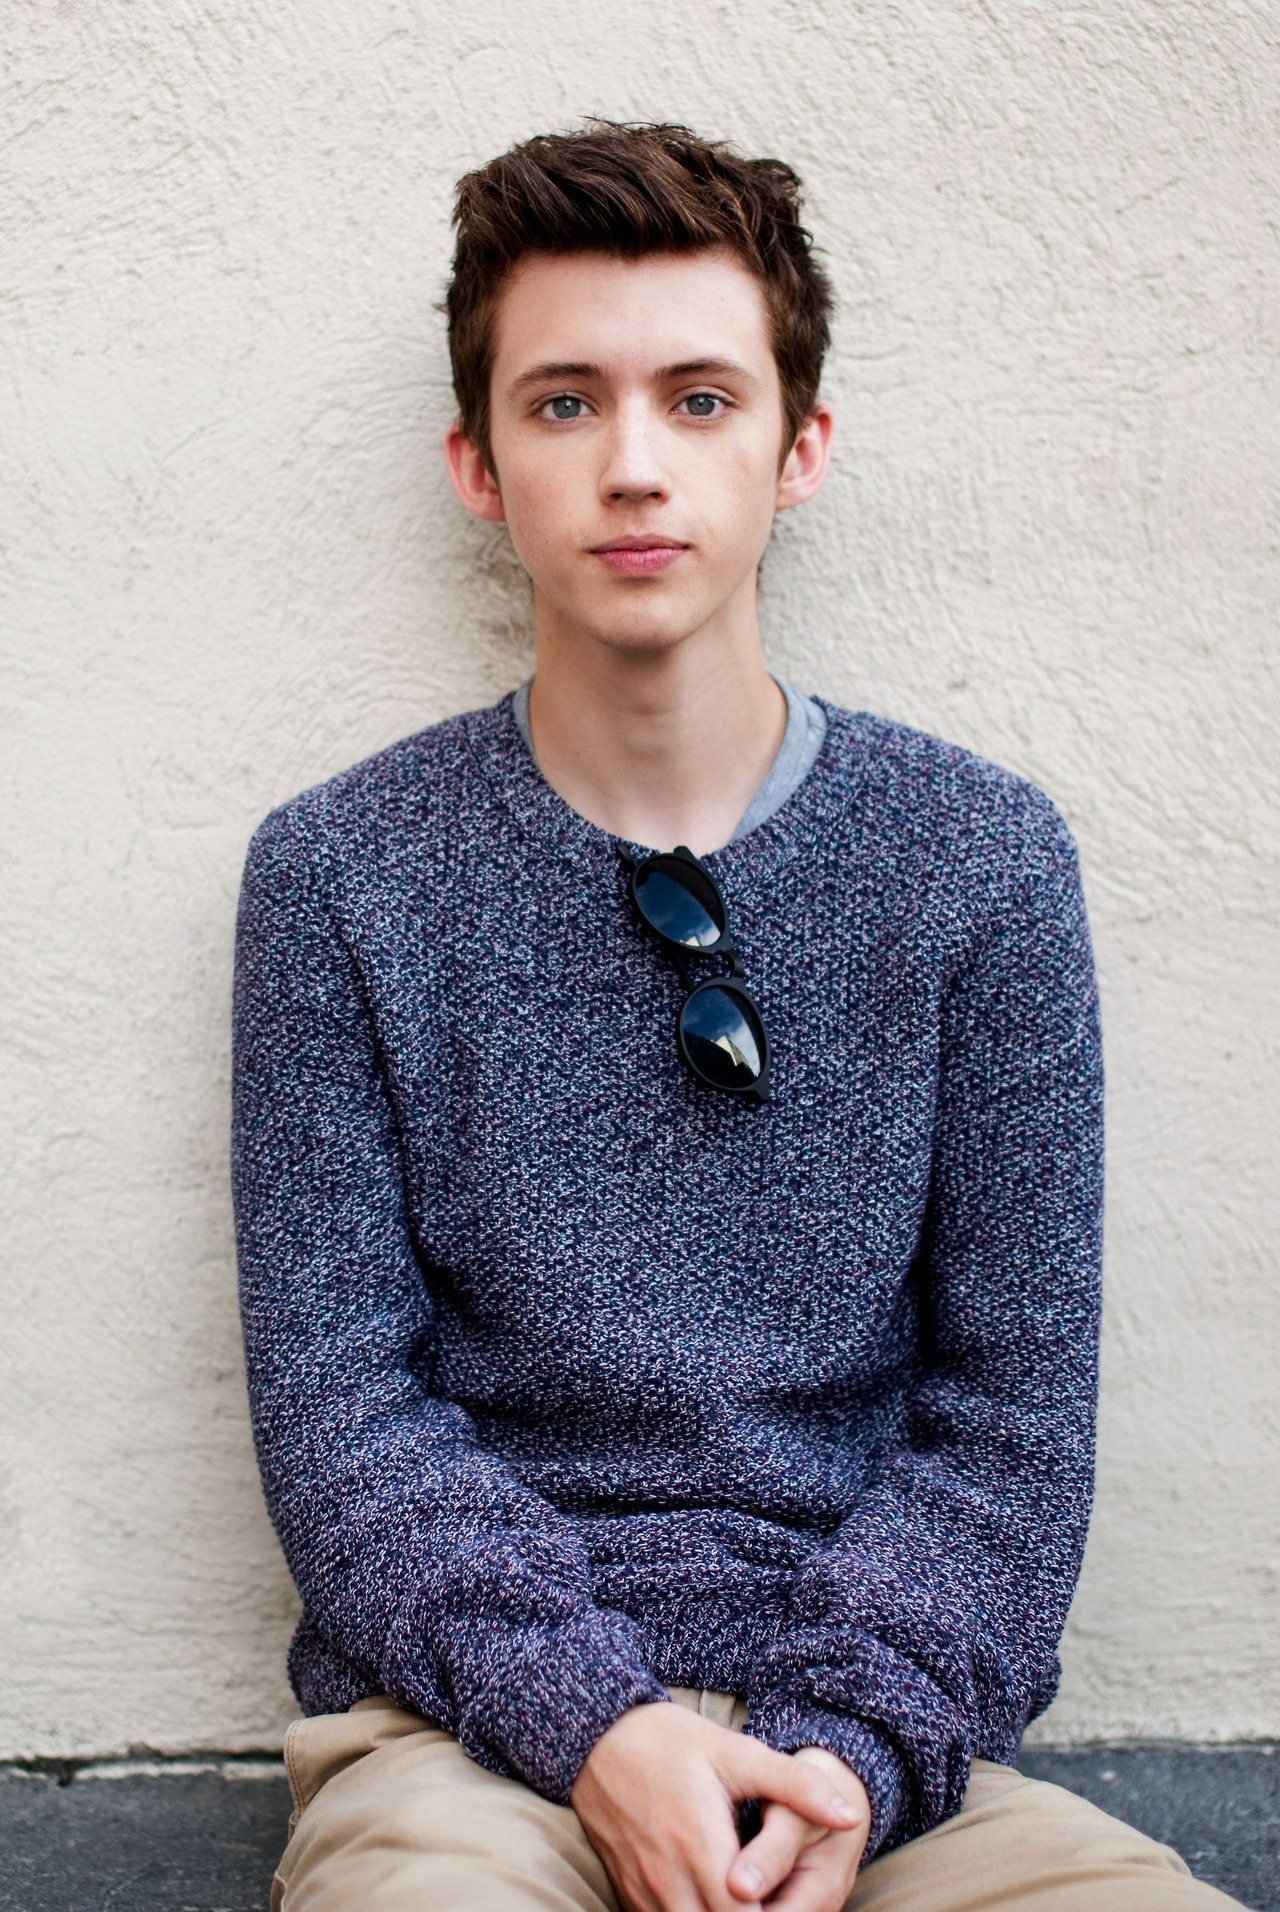 troye sivan troye sivan wikia fandom powered by wikia